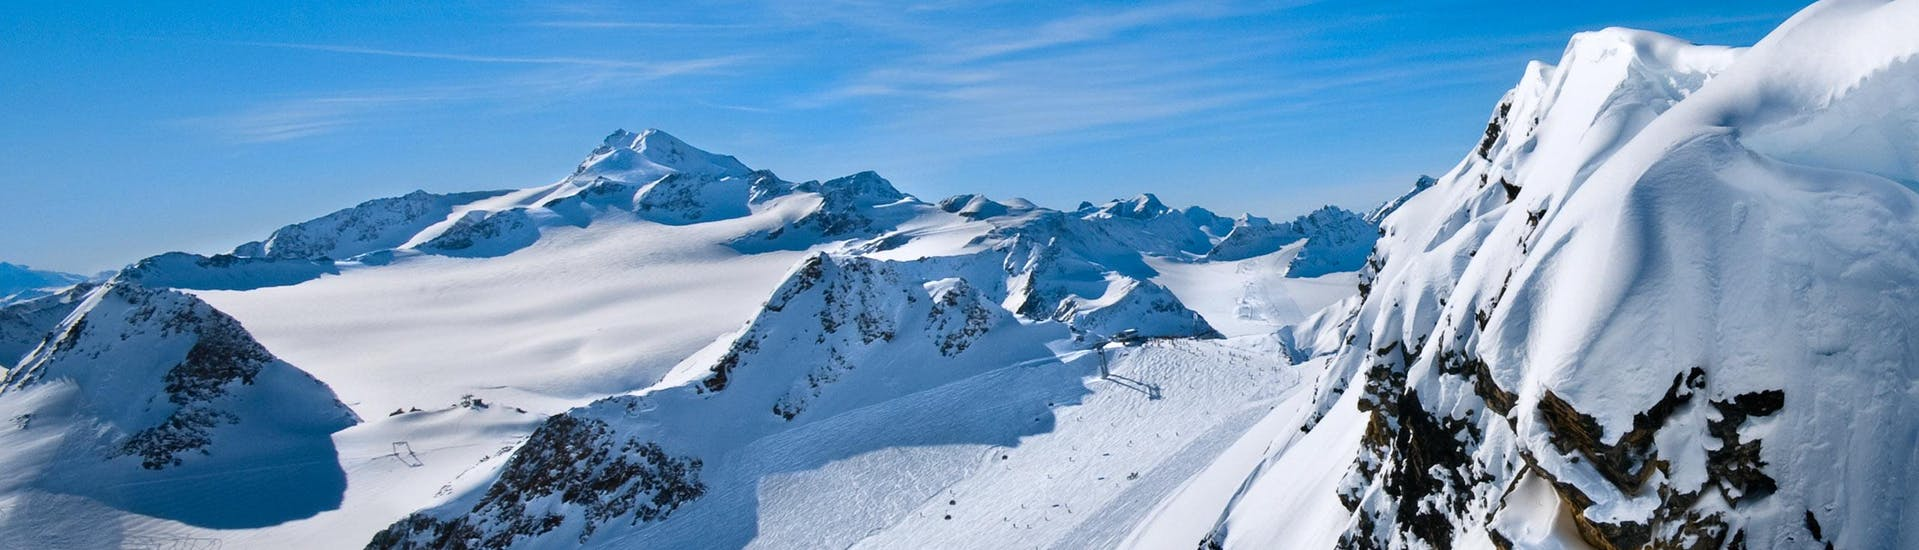 A view of a snowy mountain top in the ski resort of Rejdice, where ski schools gather to start their ski lessons.